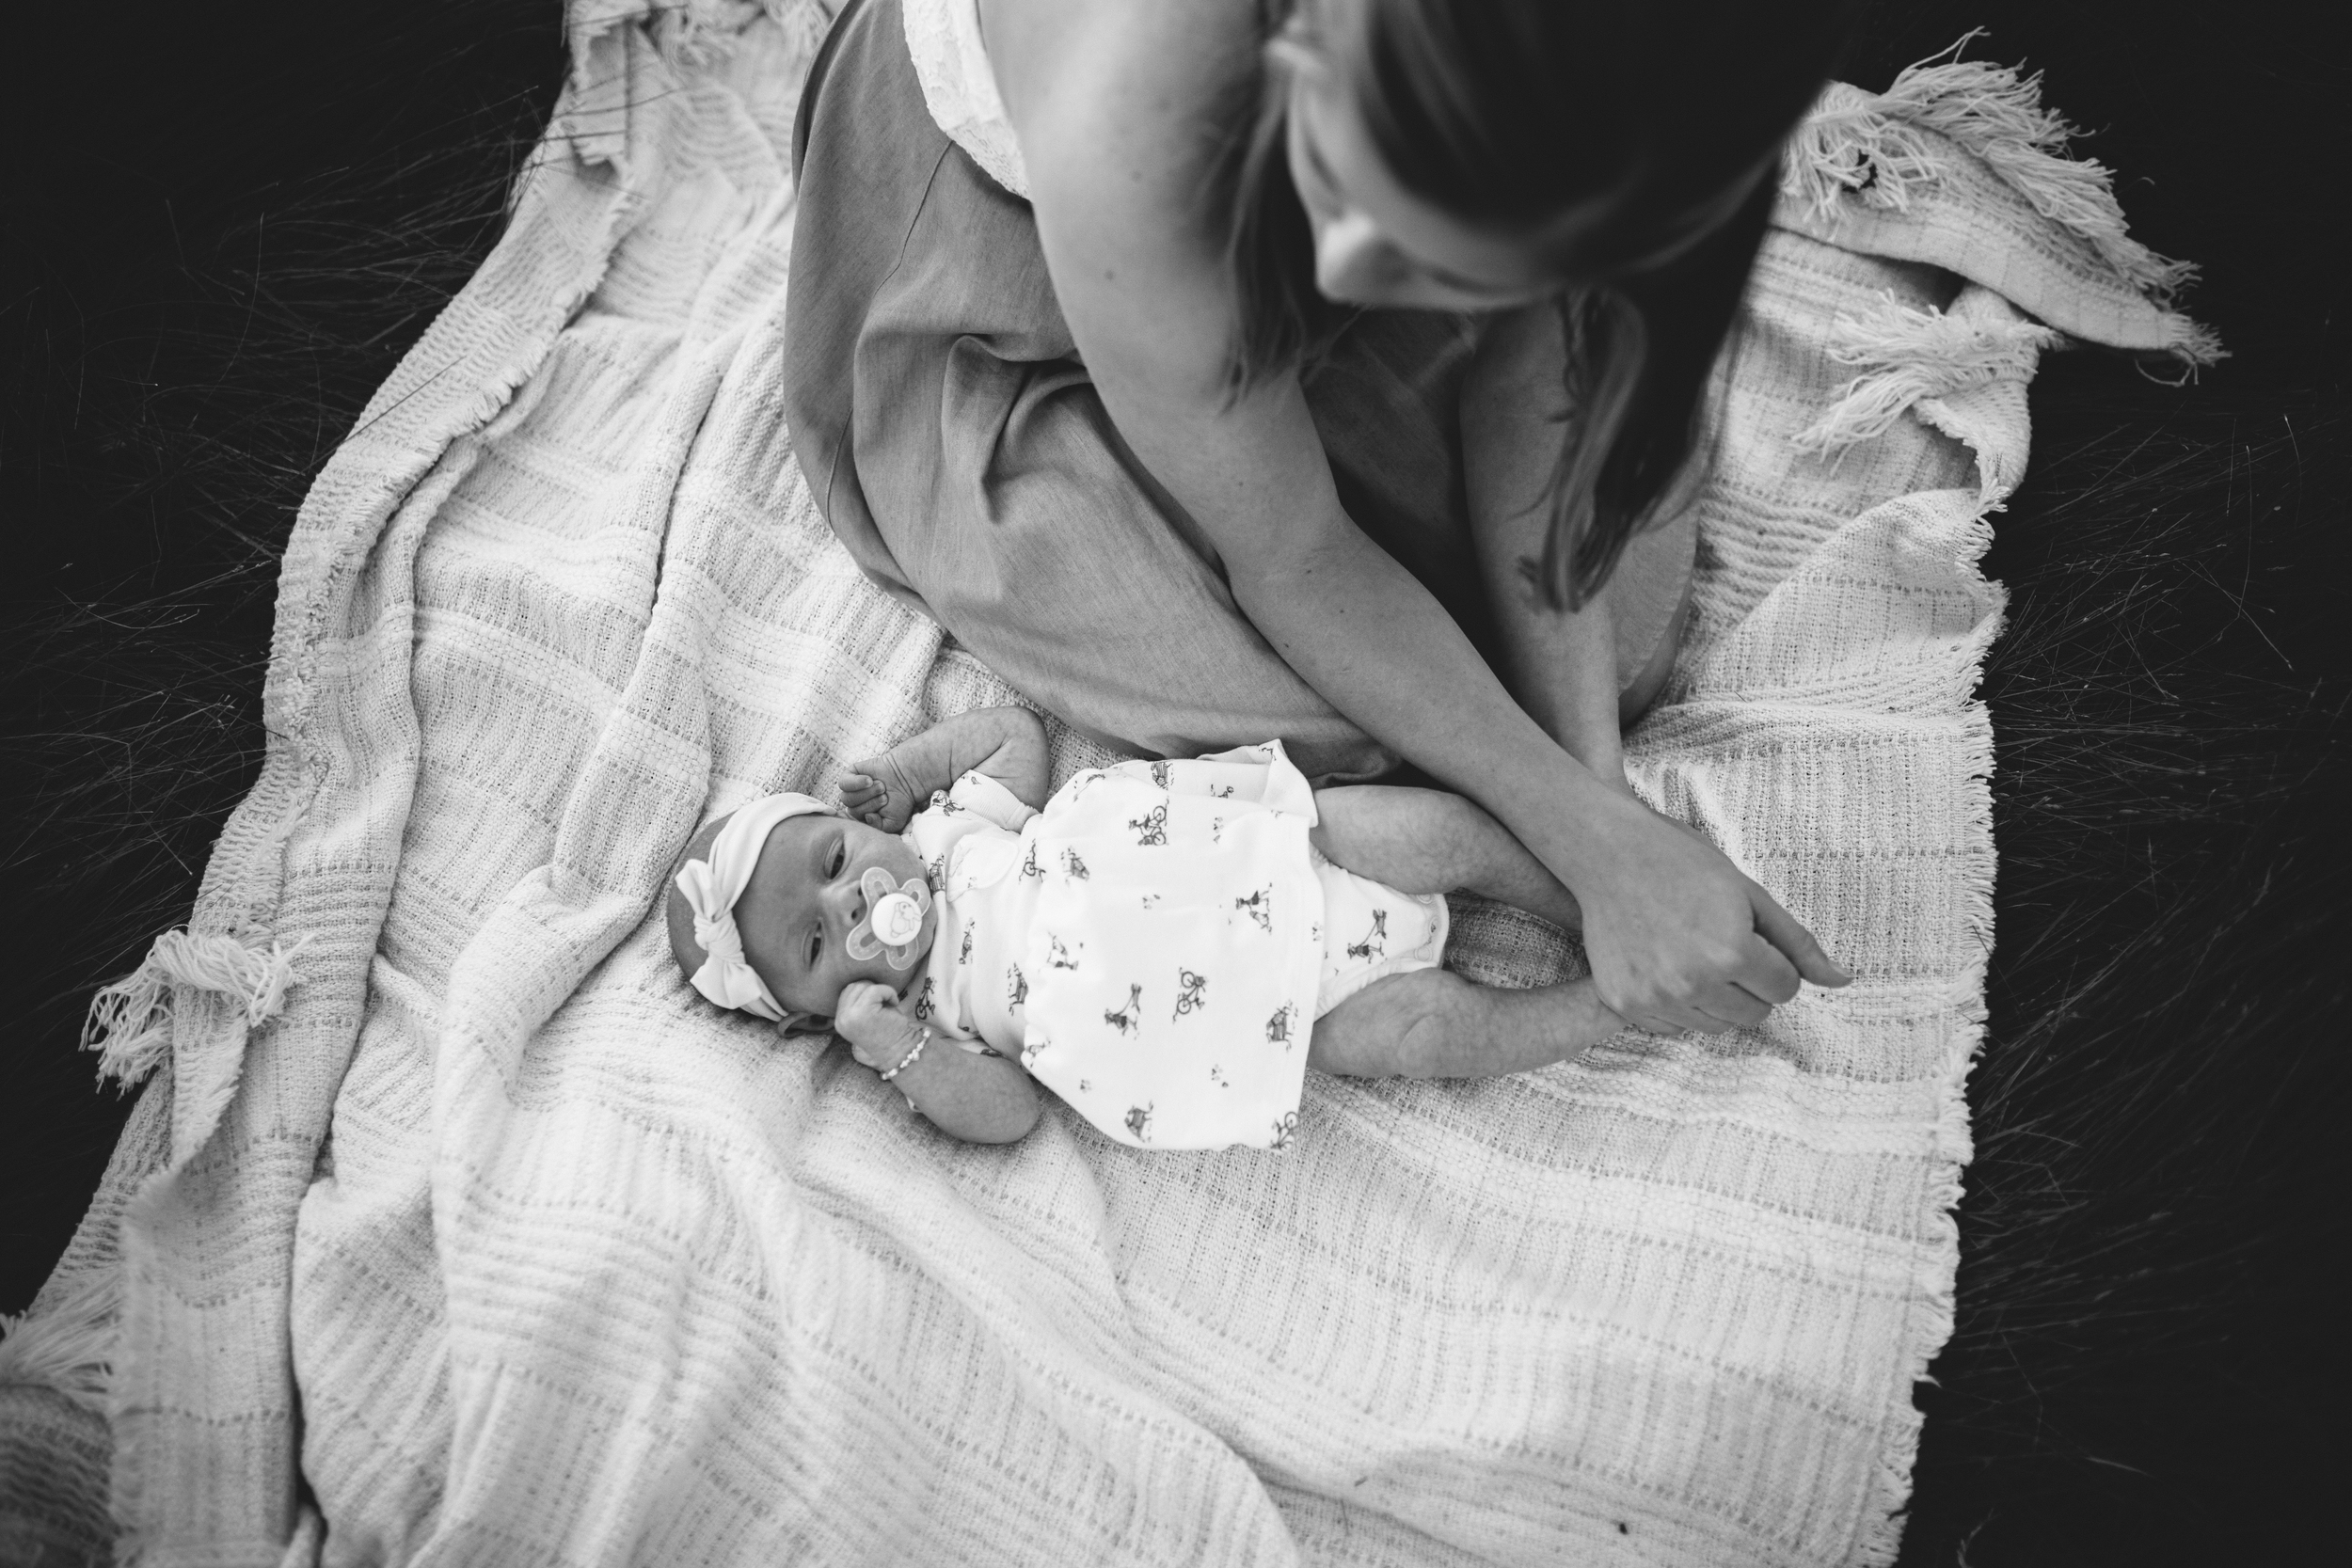 image from above of mother warming up newborn's feet